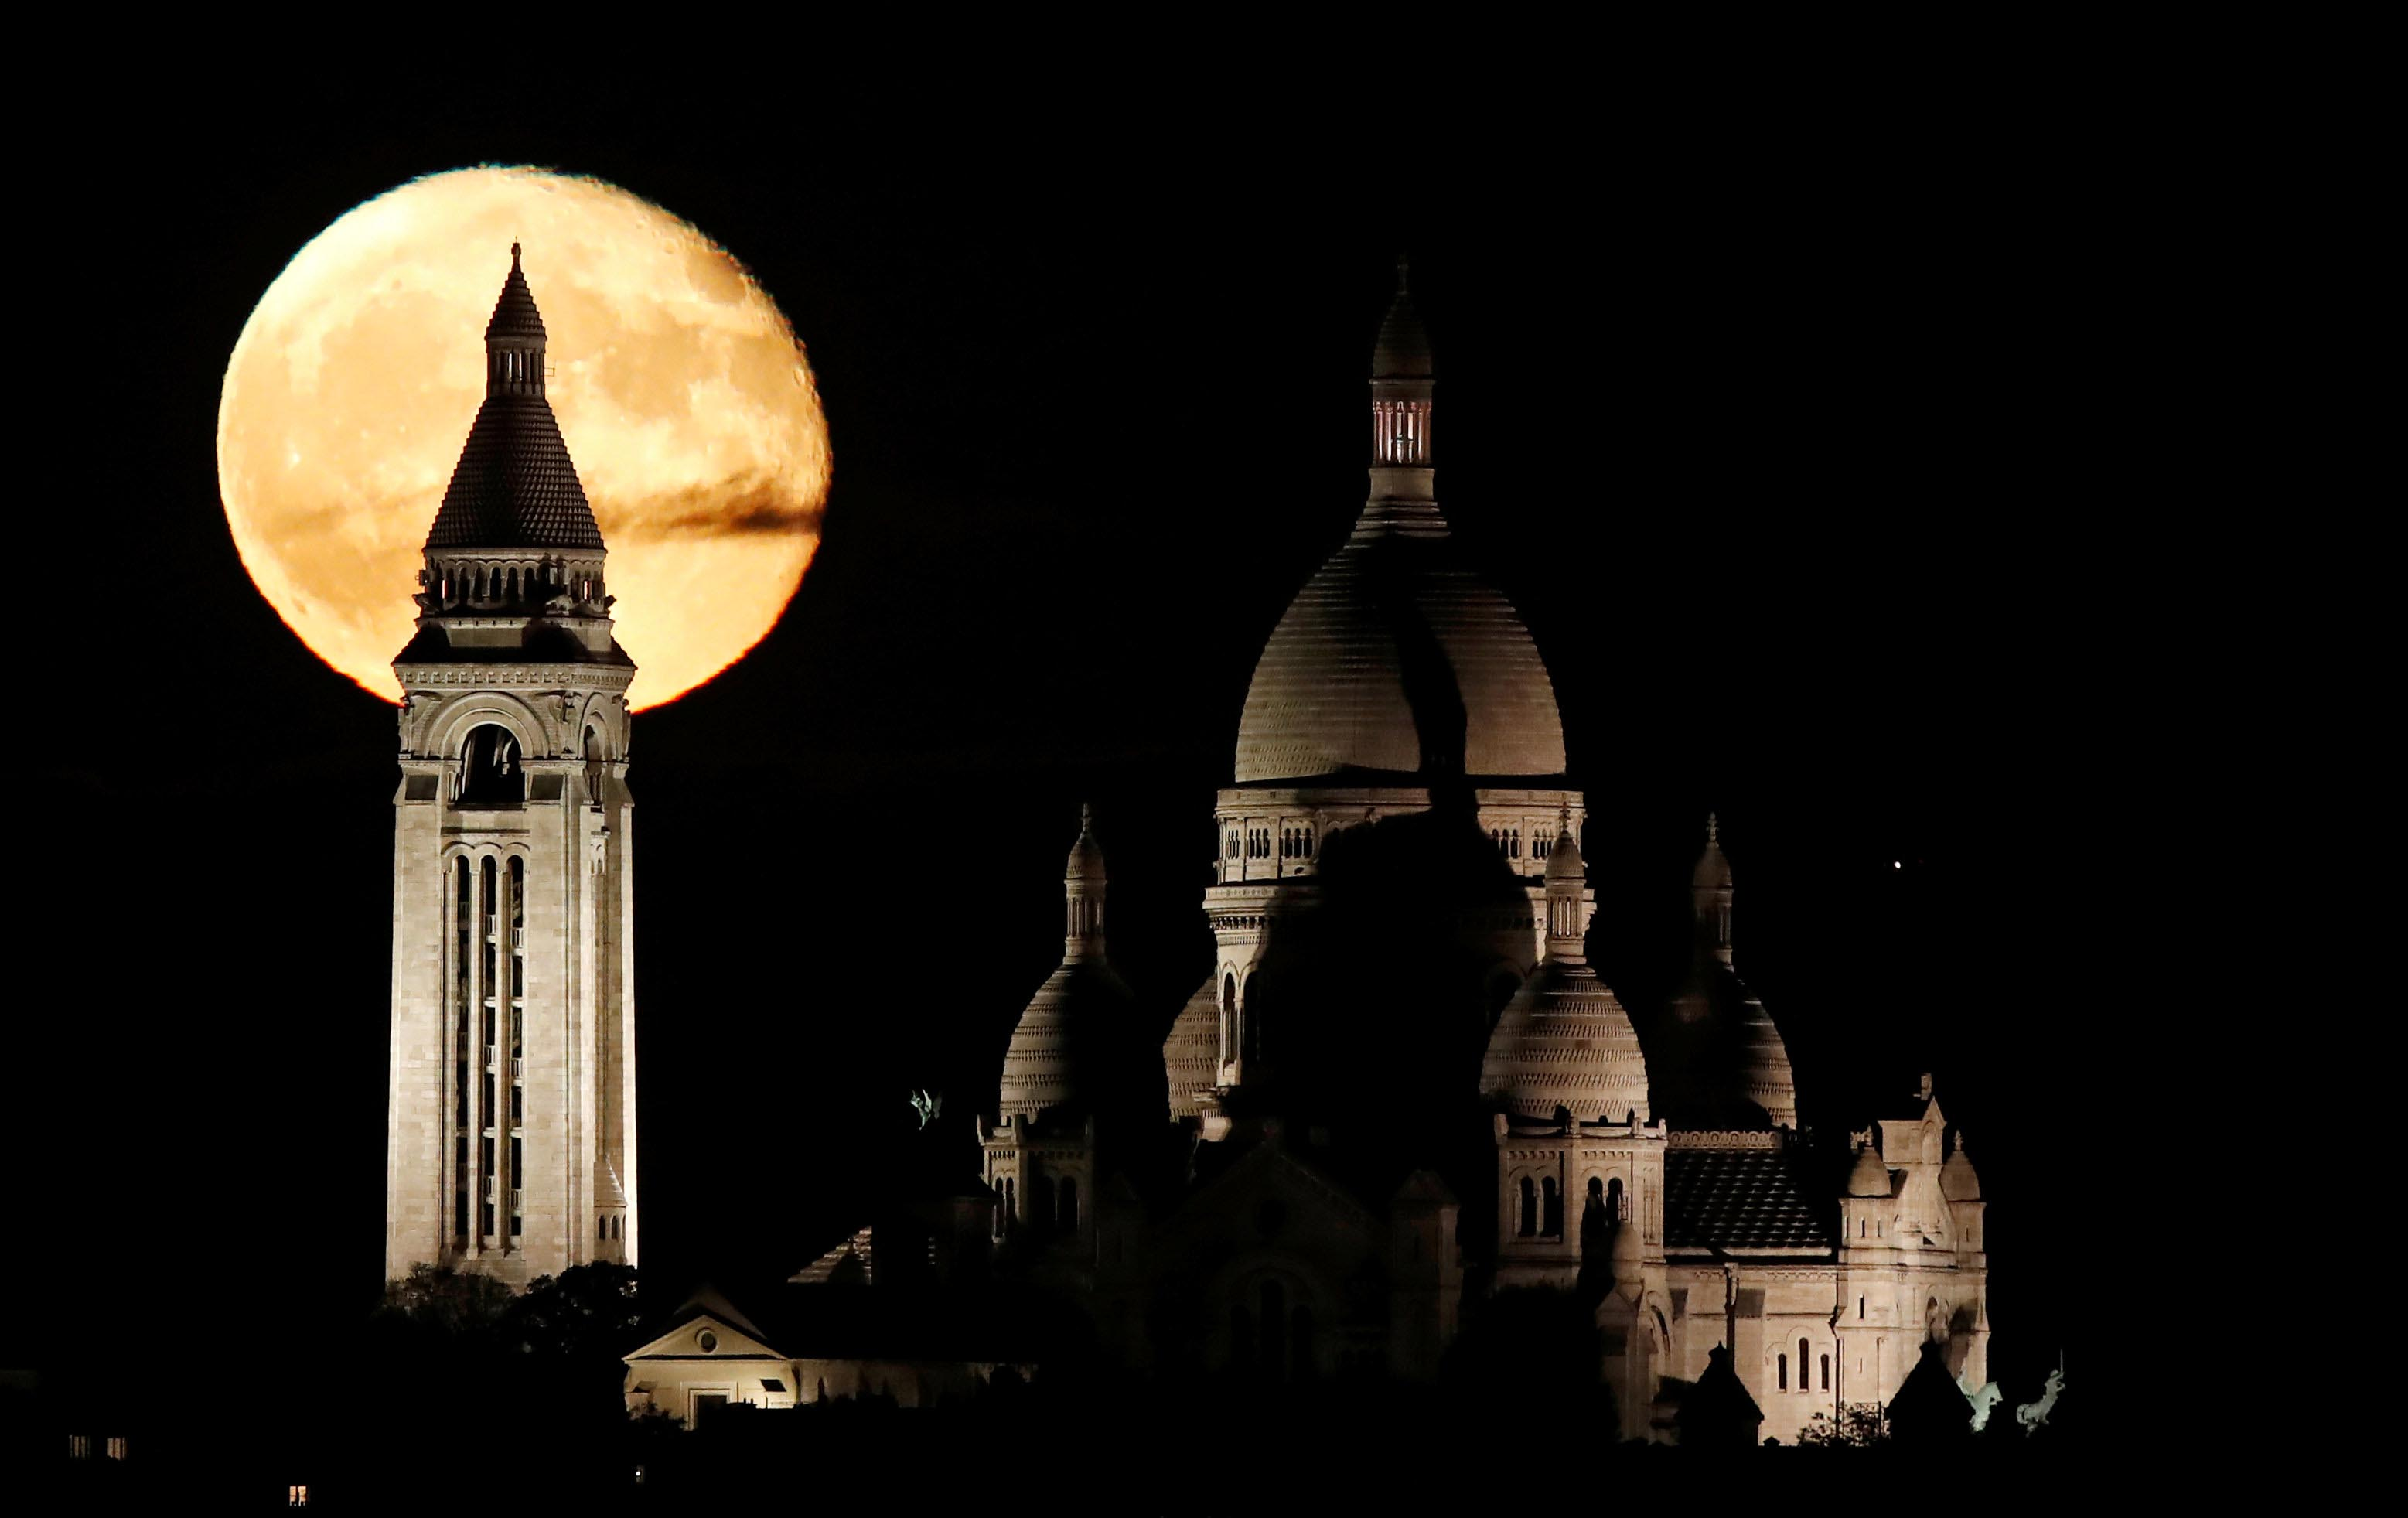 The moon rises over the Sacre Coeur Basilica in Montmartre in Paris, France, on November 5, 2017. Photo: Reuters